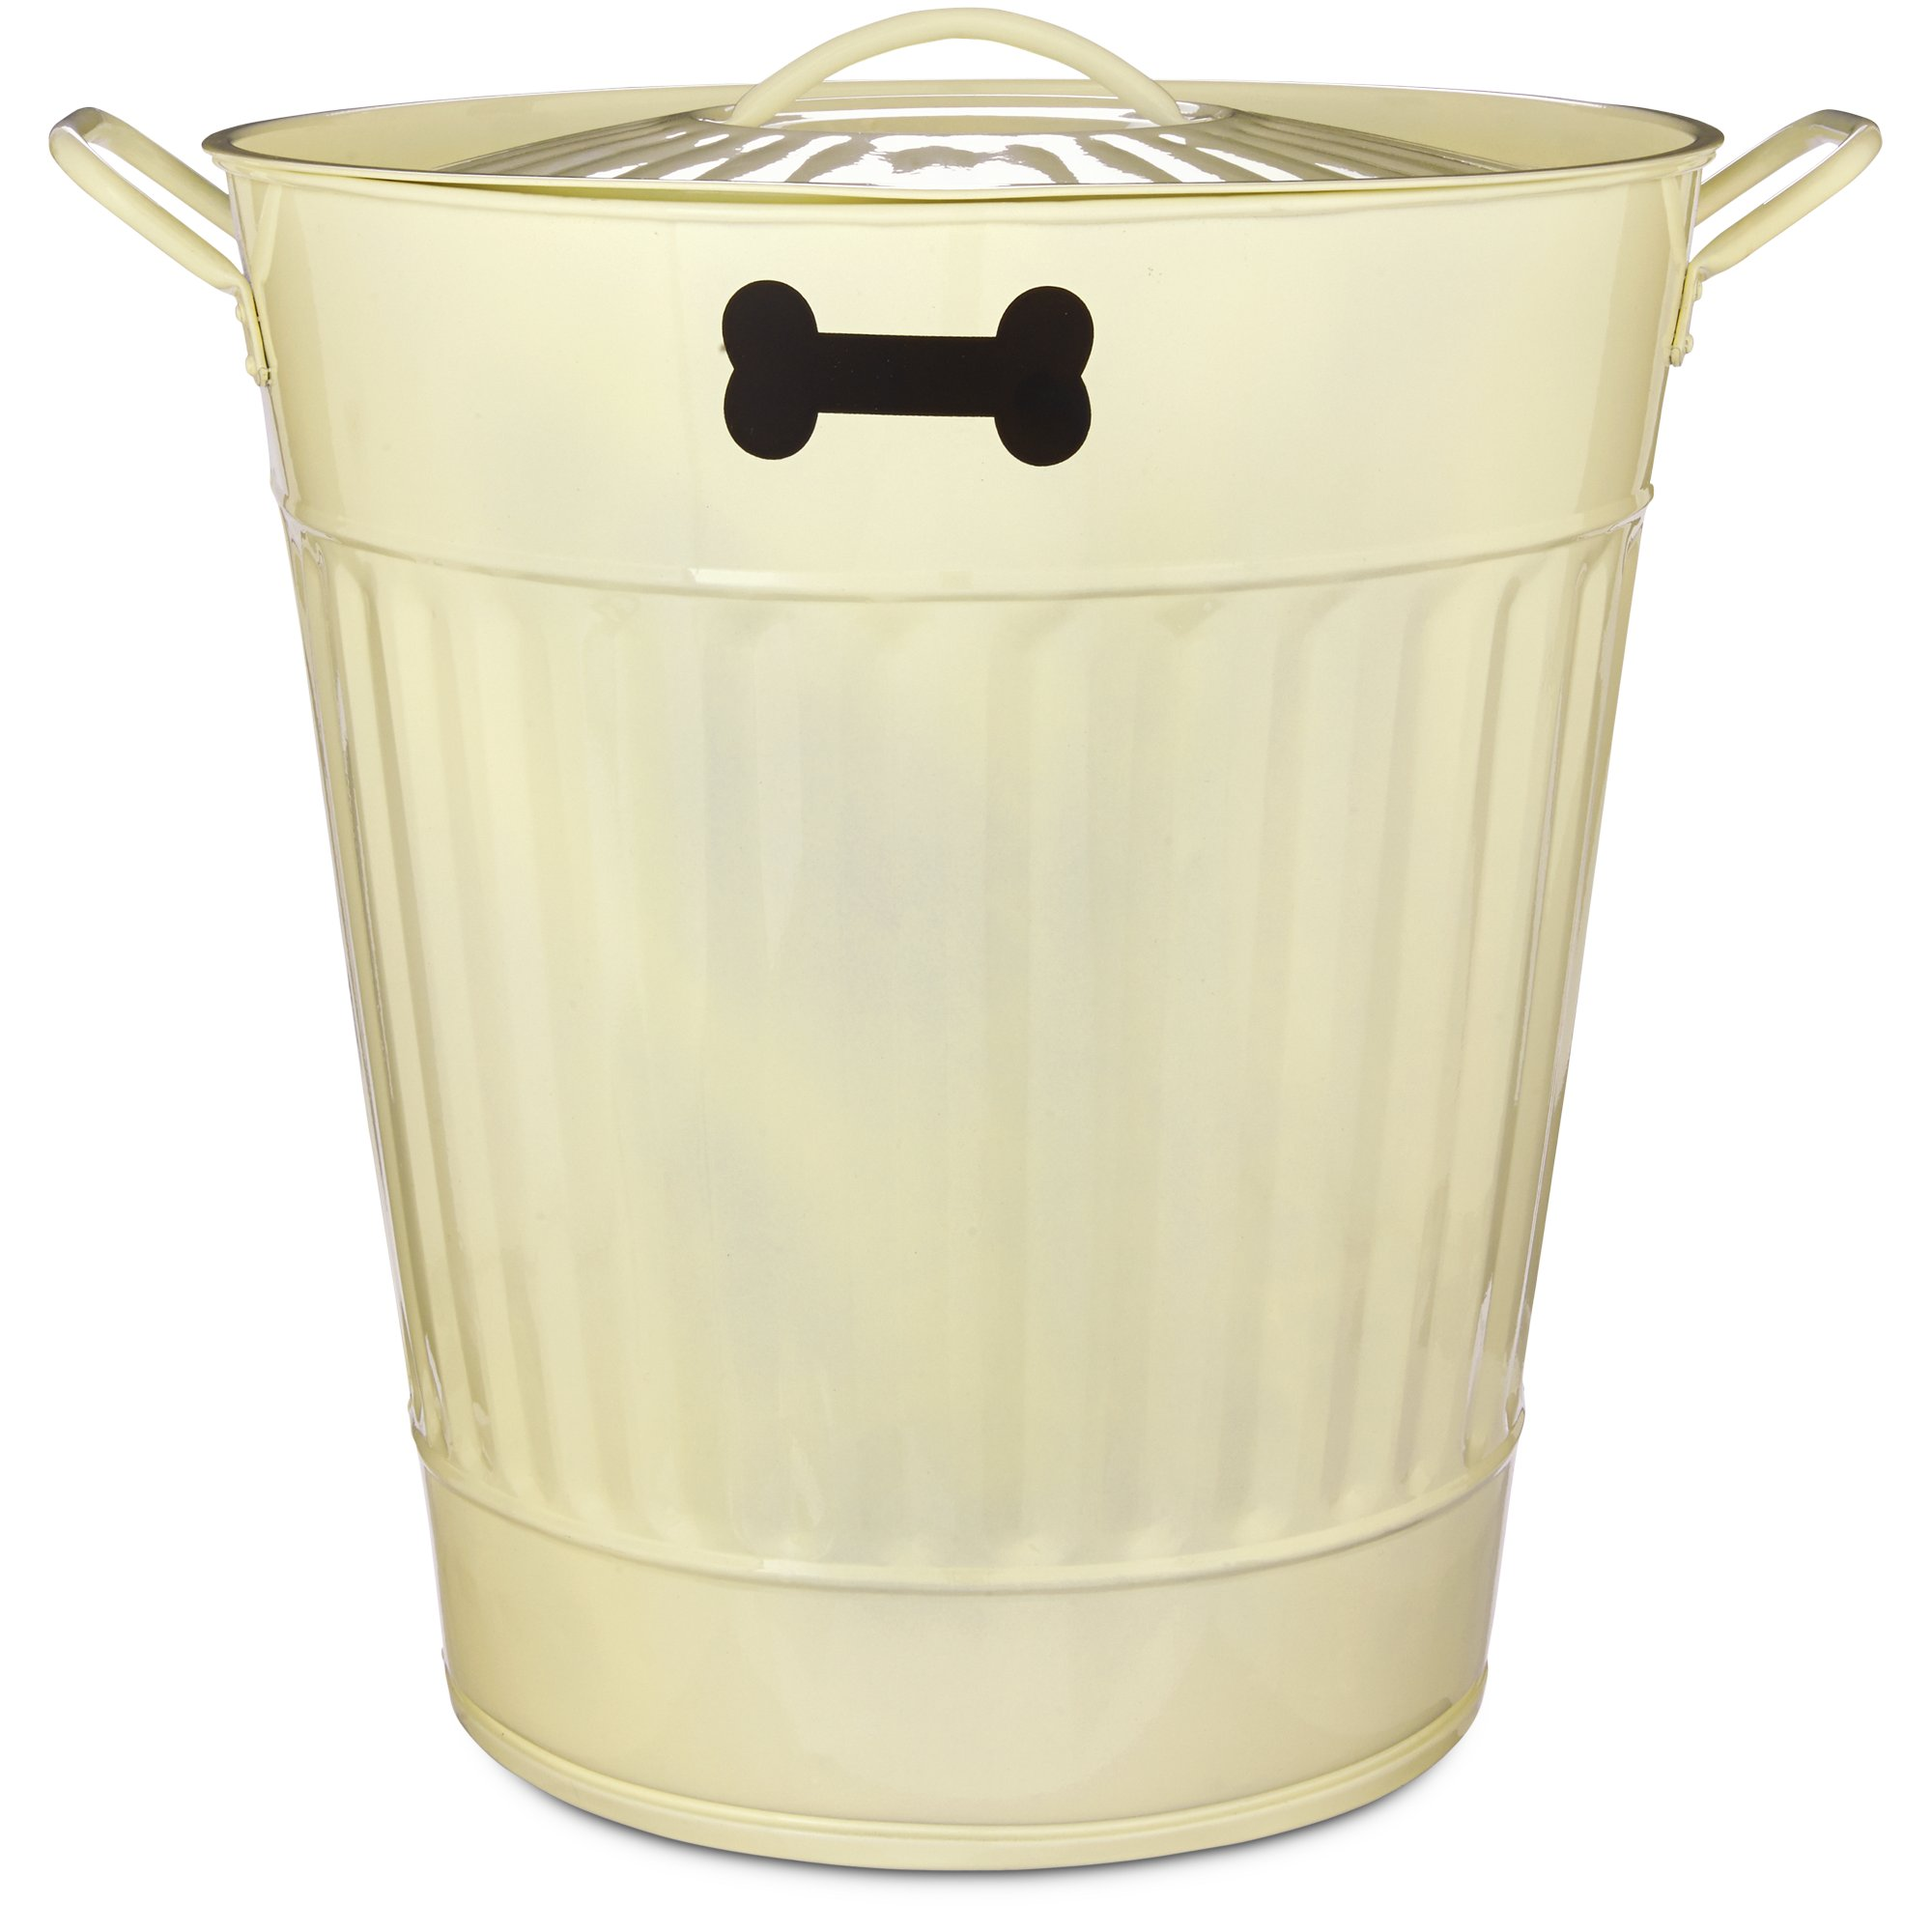 You Amp Me Pet Food Storage Bin In Cream Petco